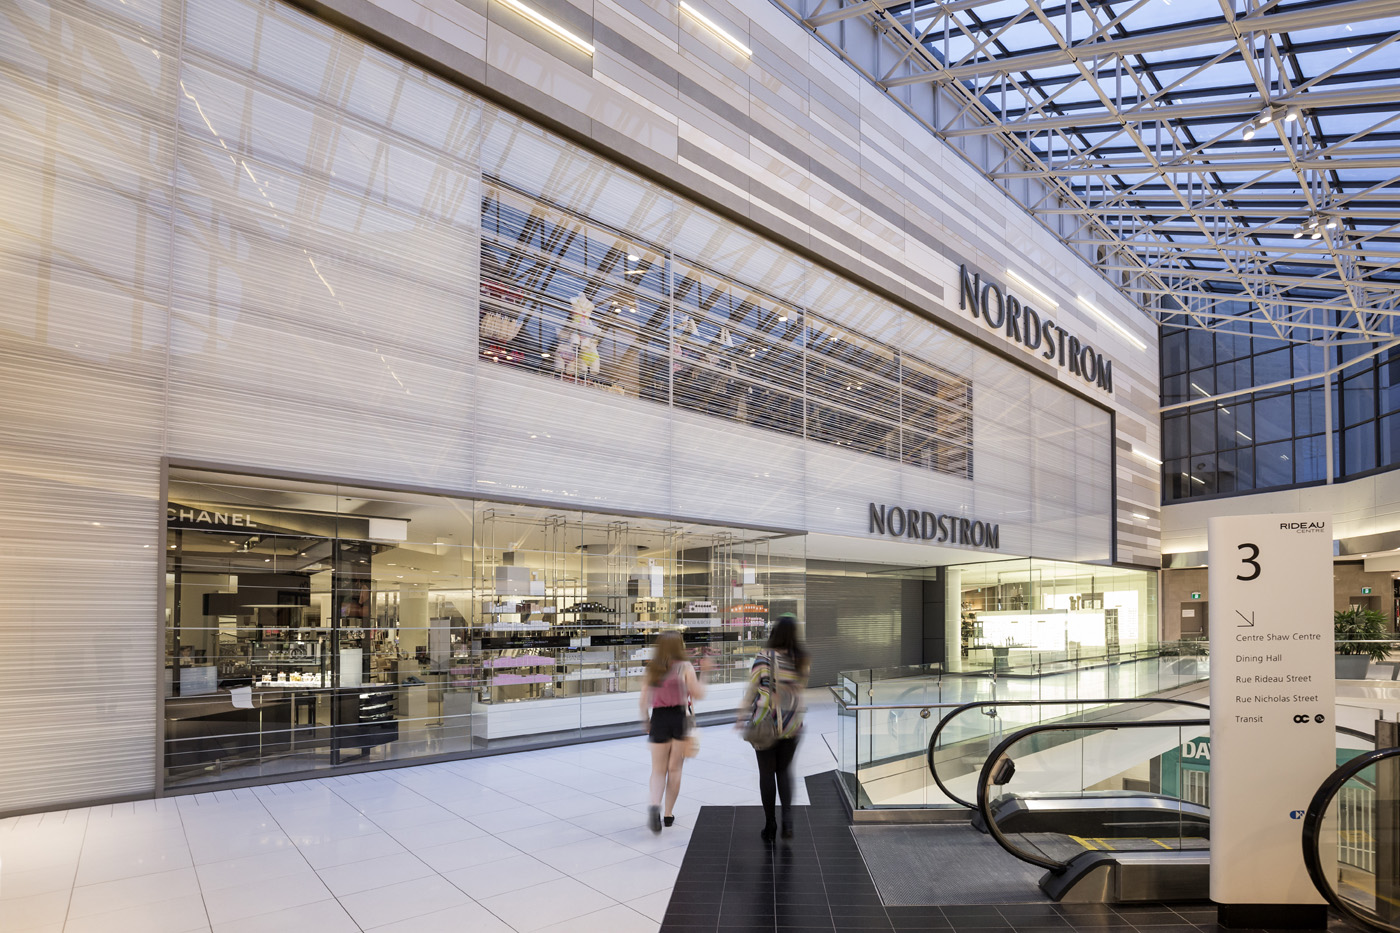 Rideau Style Boheme Chic mall nordstrom - neolith facades